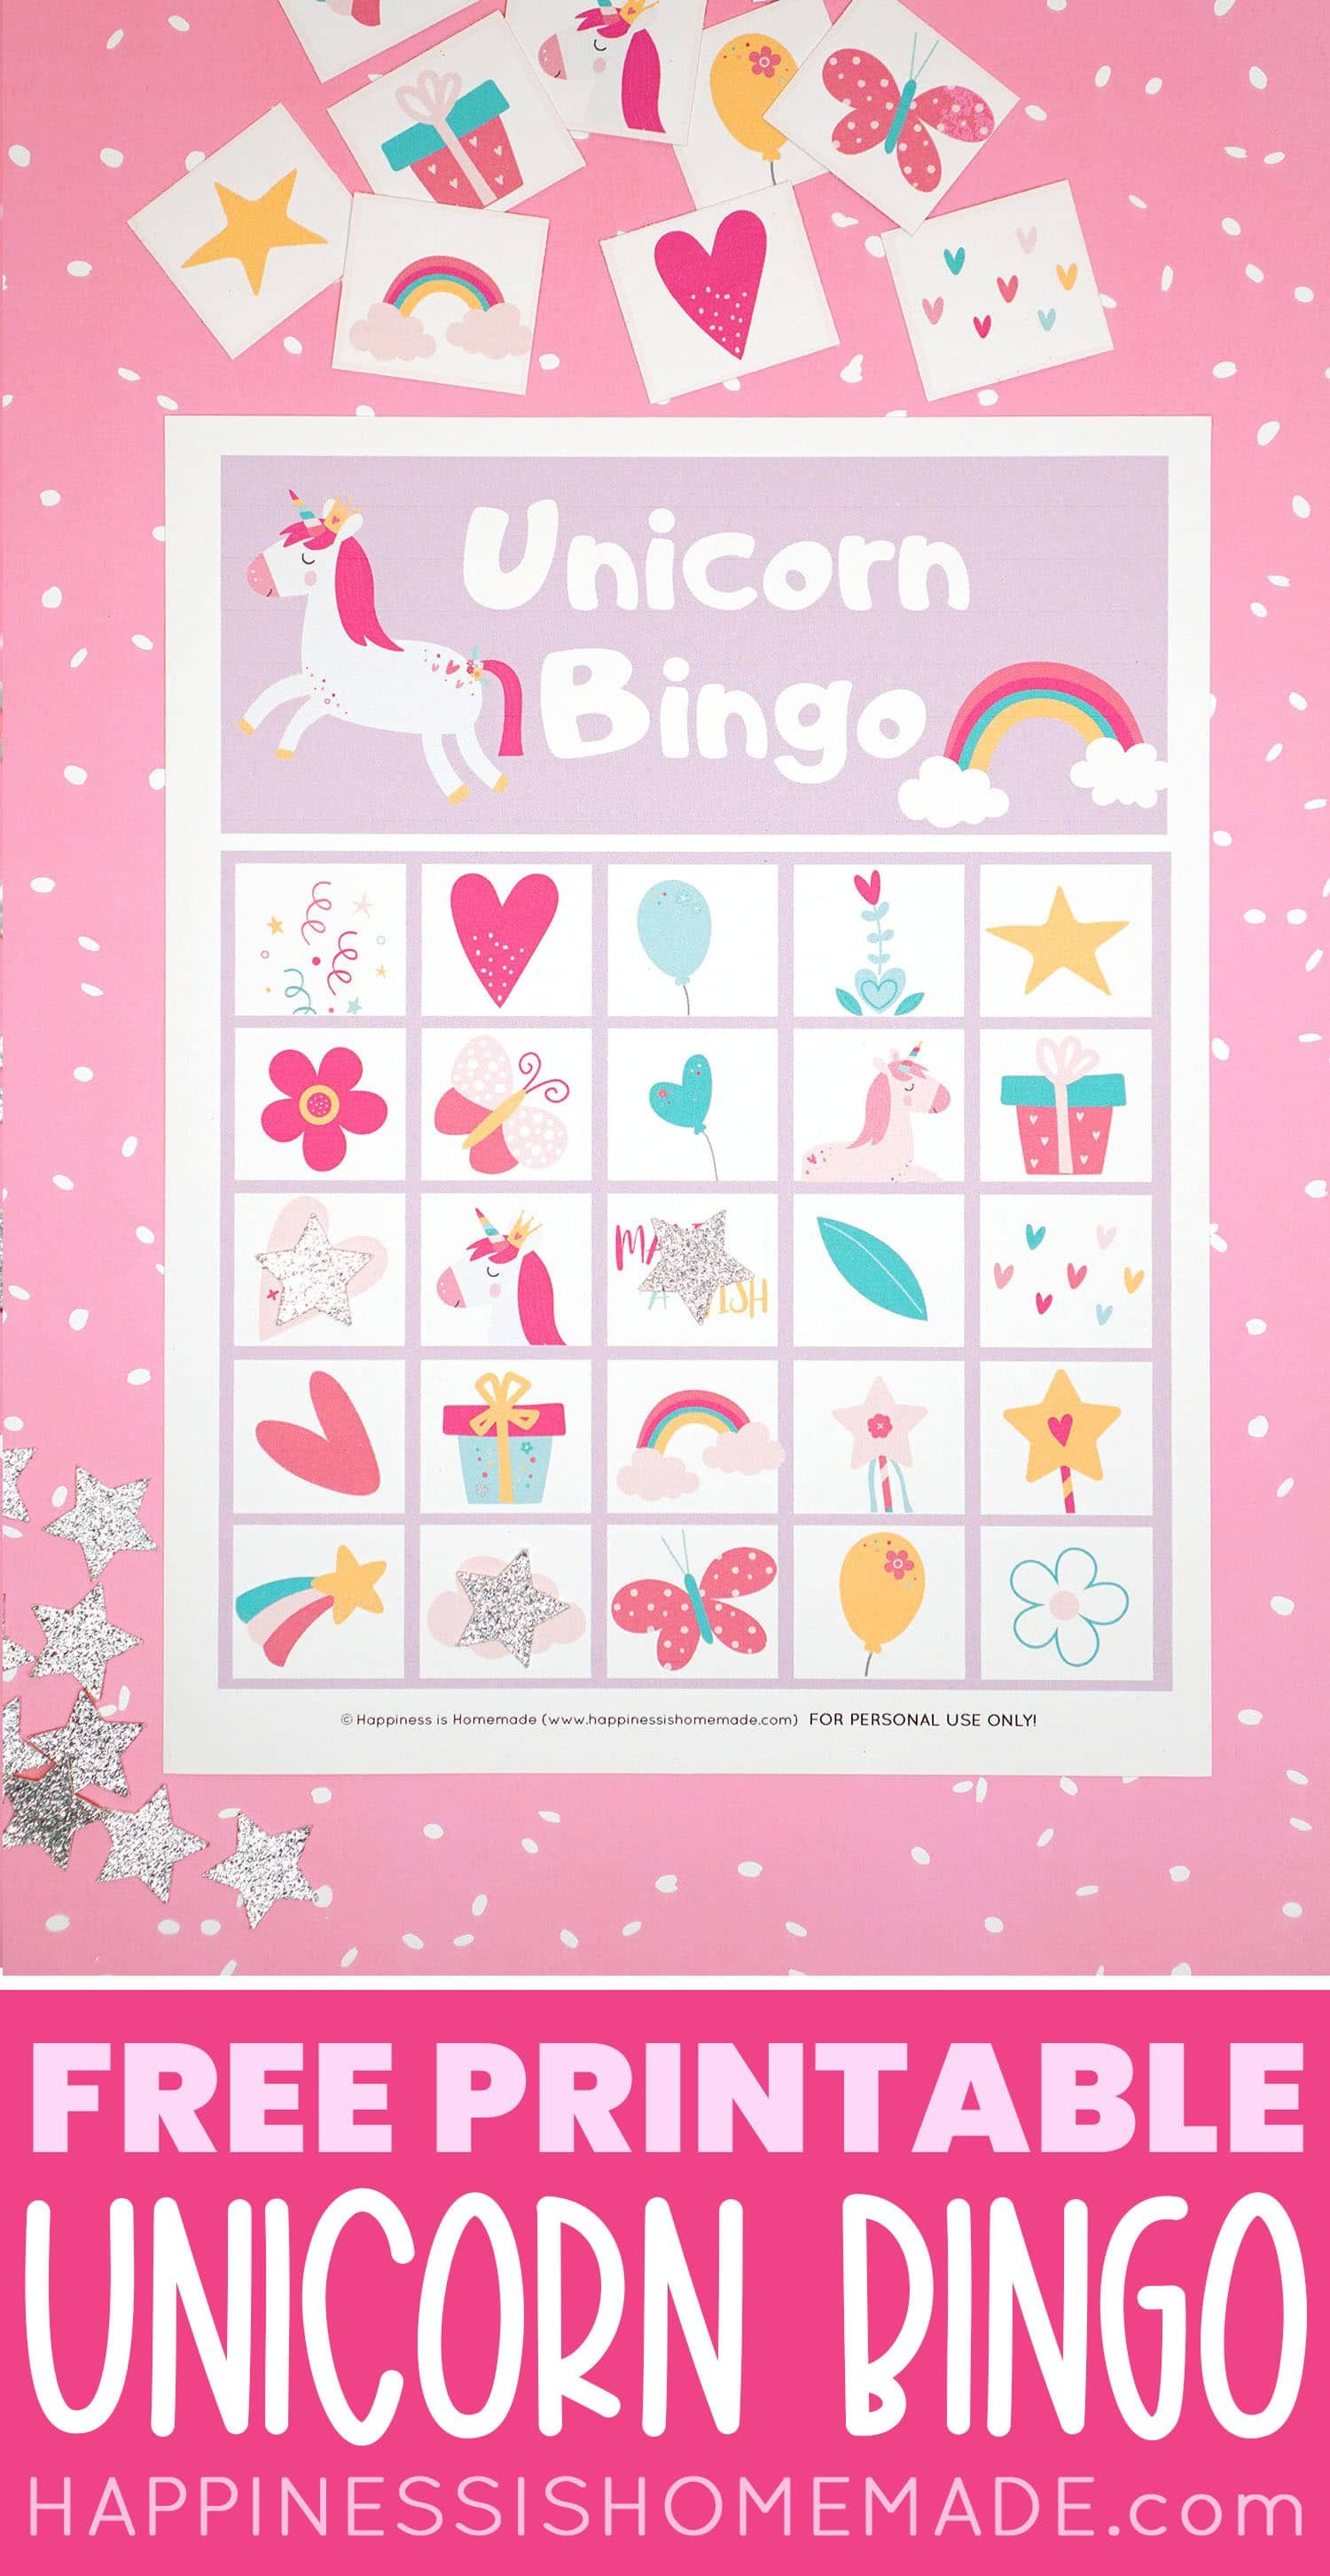 Download Our Free Printable Unicorn Bingo Game Cards To Play This Fun And Colorf Birthday Party Games For Kids Birthday Games For Kids Unicorn Birthday Parties